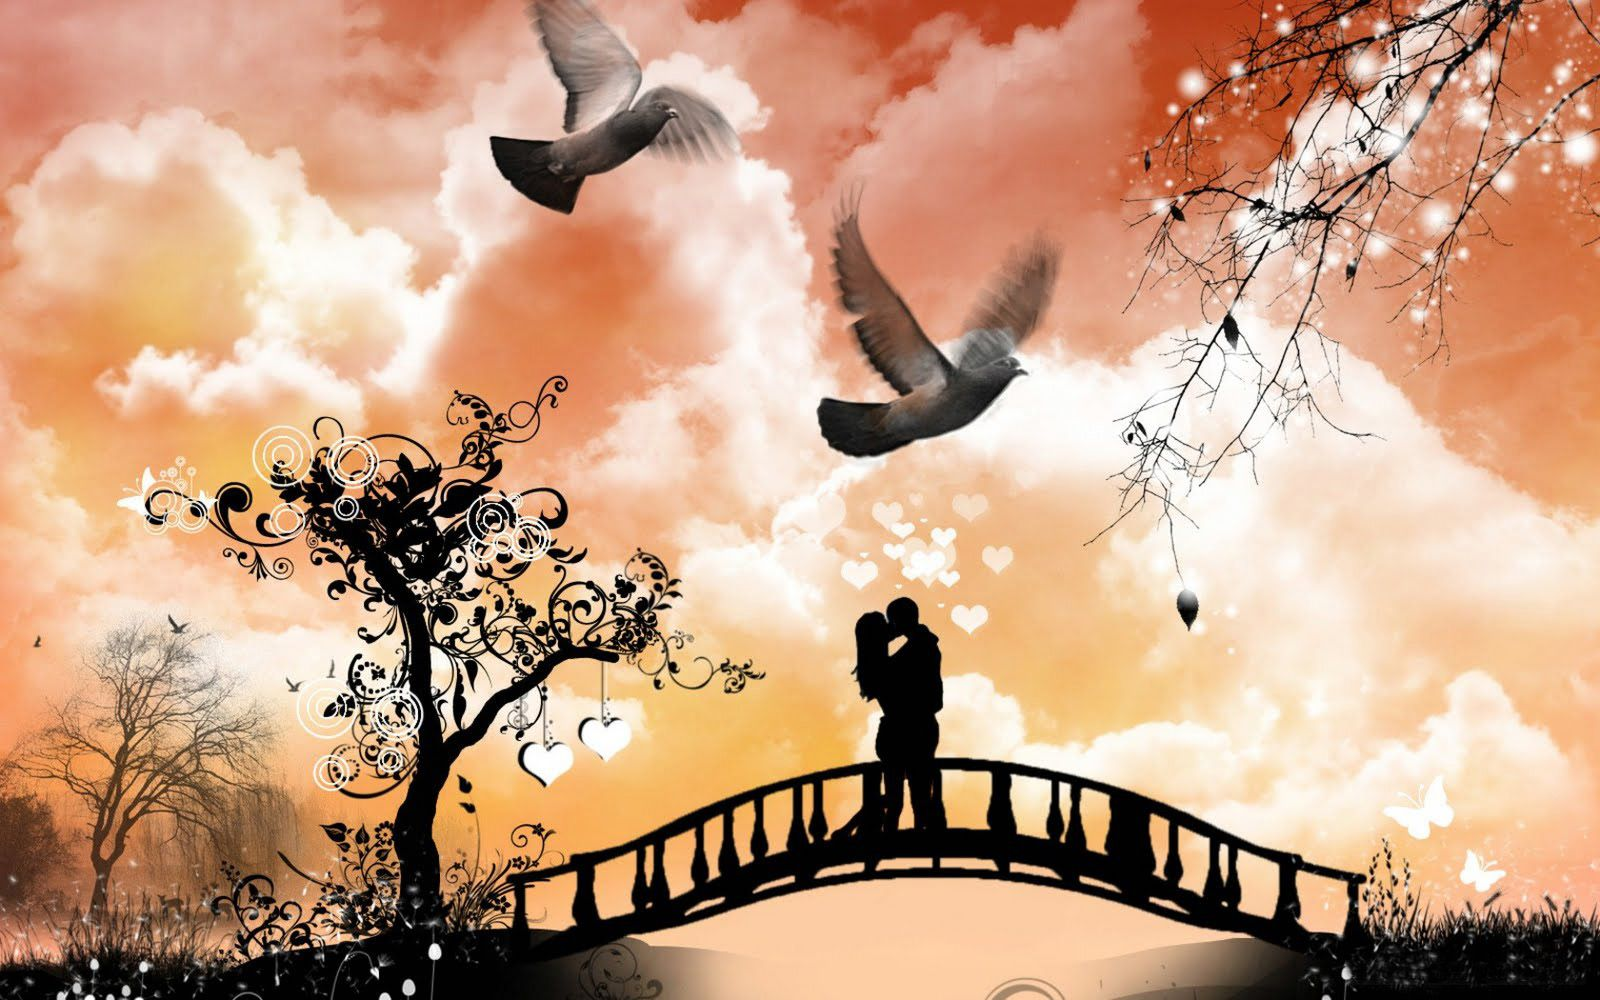 Love Cupal Hd Wallpaper Cute Love Wallpapers Love Images Love Quotes Wallpaper